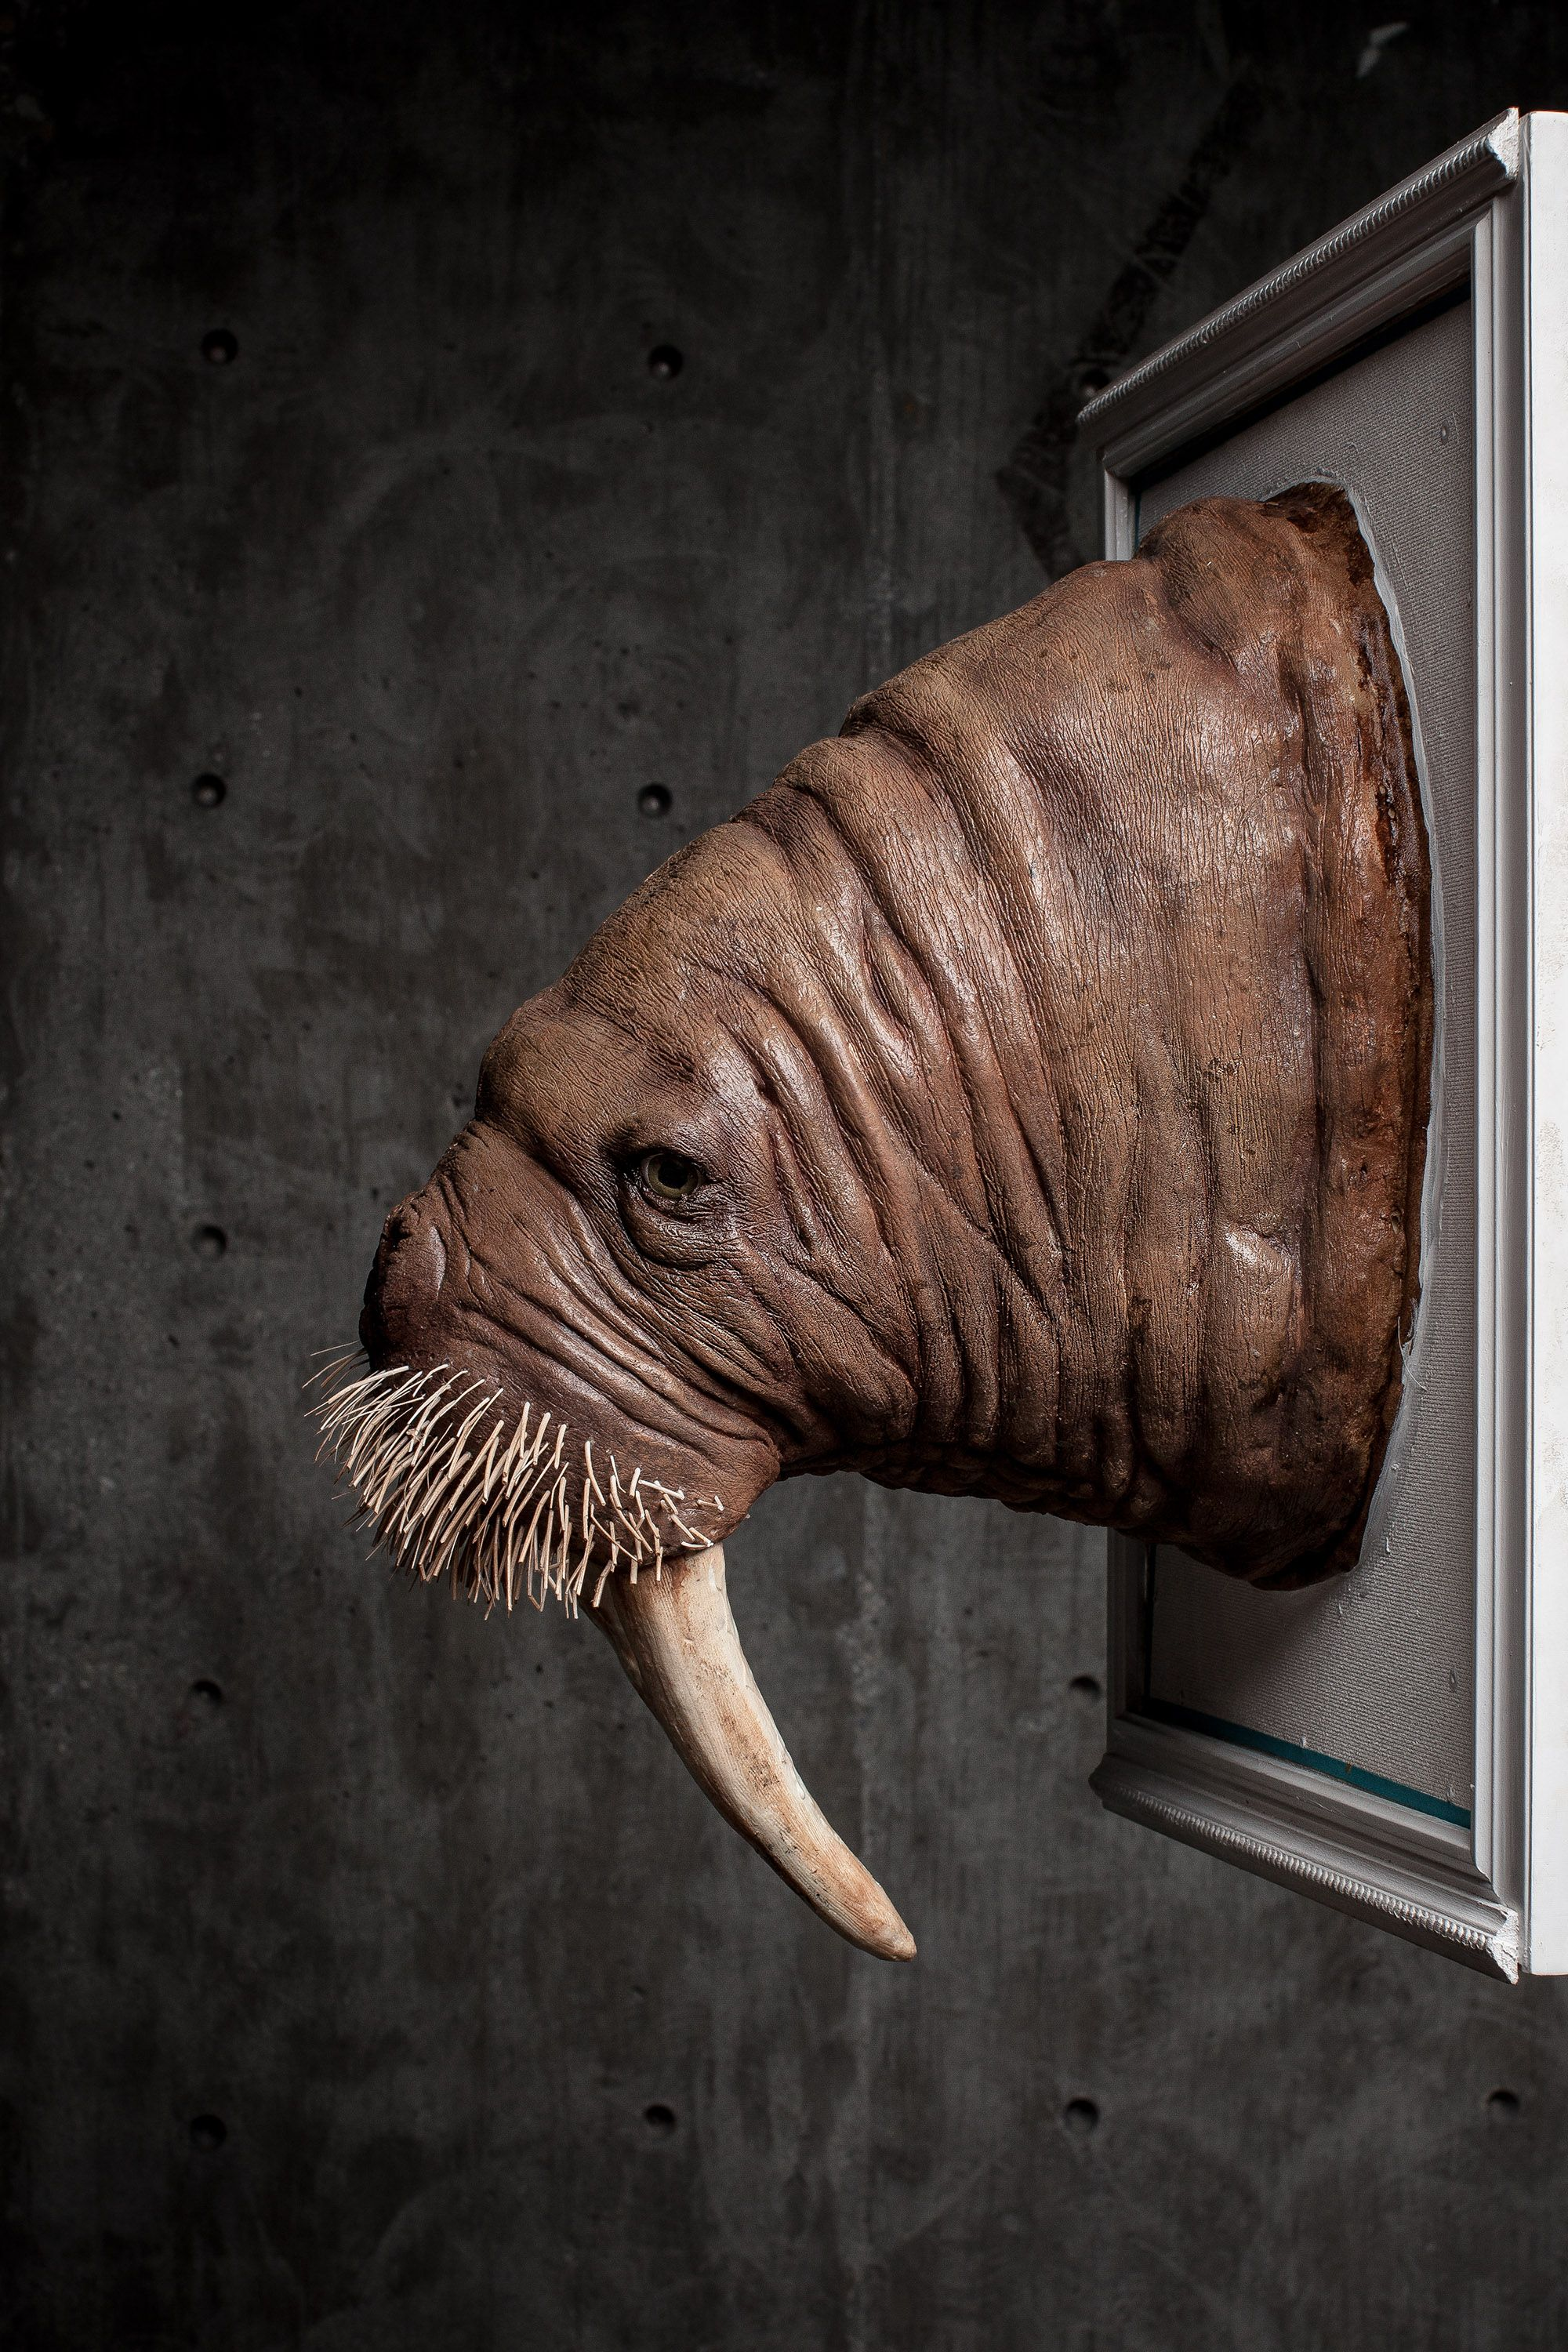 The Pacific Walrus- made from all vegan materials, Wilde Animal heads are meant to educate people about endangered and vulnerable species and show appreciation for these animals without killing them. Learn more and get your own Wilde Animal at www.wildeanimals.com